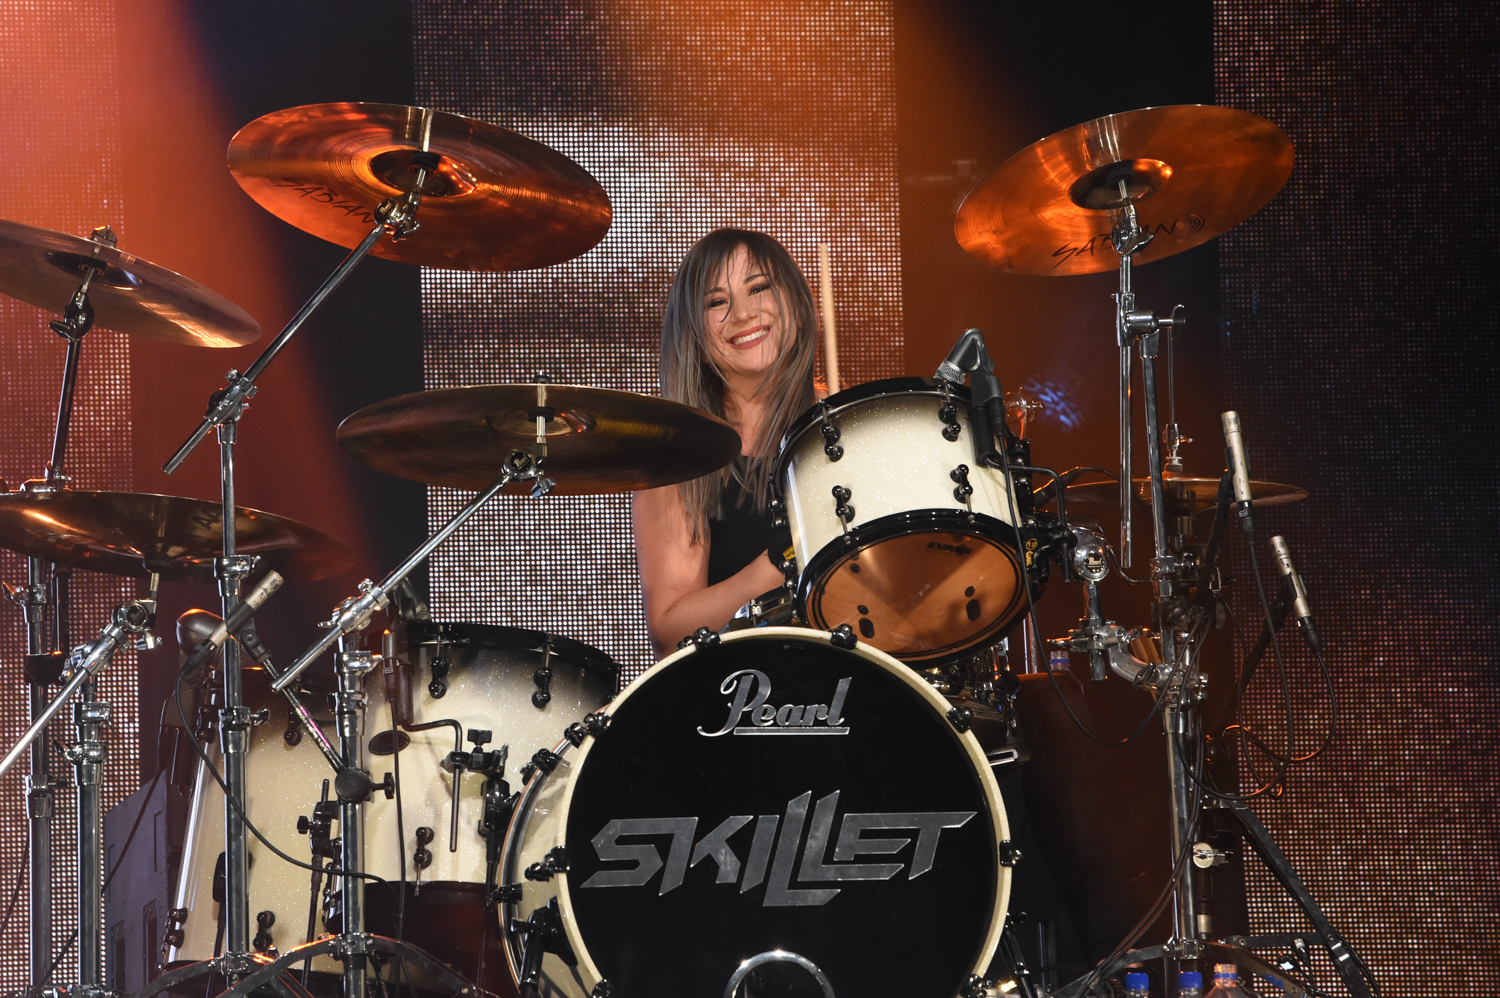 Jen Ledger performs a social distancing tailgate concert with the Christian Rock band Skillet at the H-E-B Center in Cedar Park, Texas on October 9, 2020. Photo © Manuel Nauta